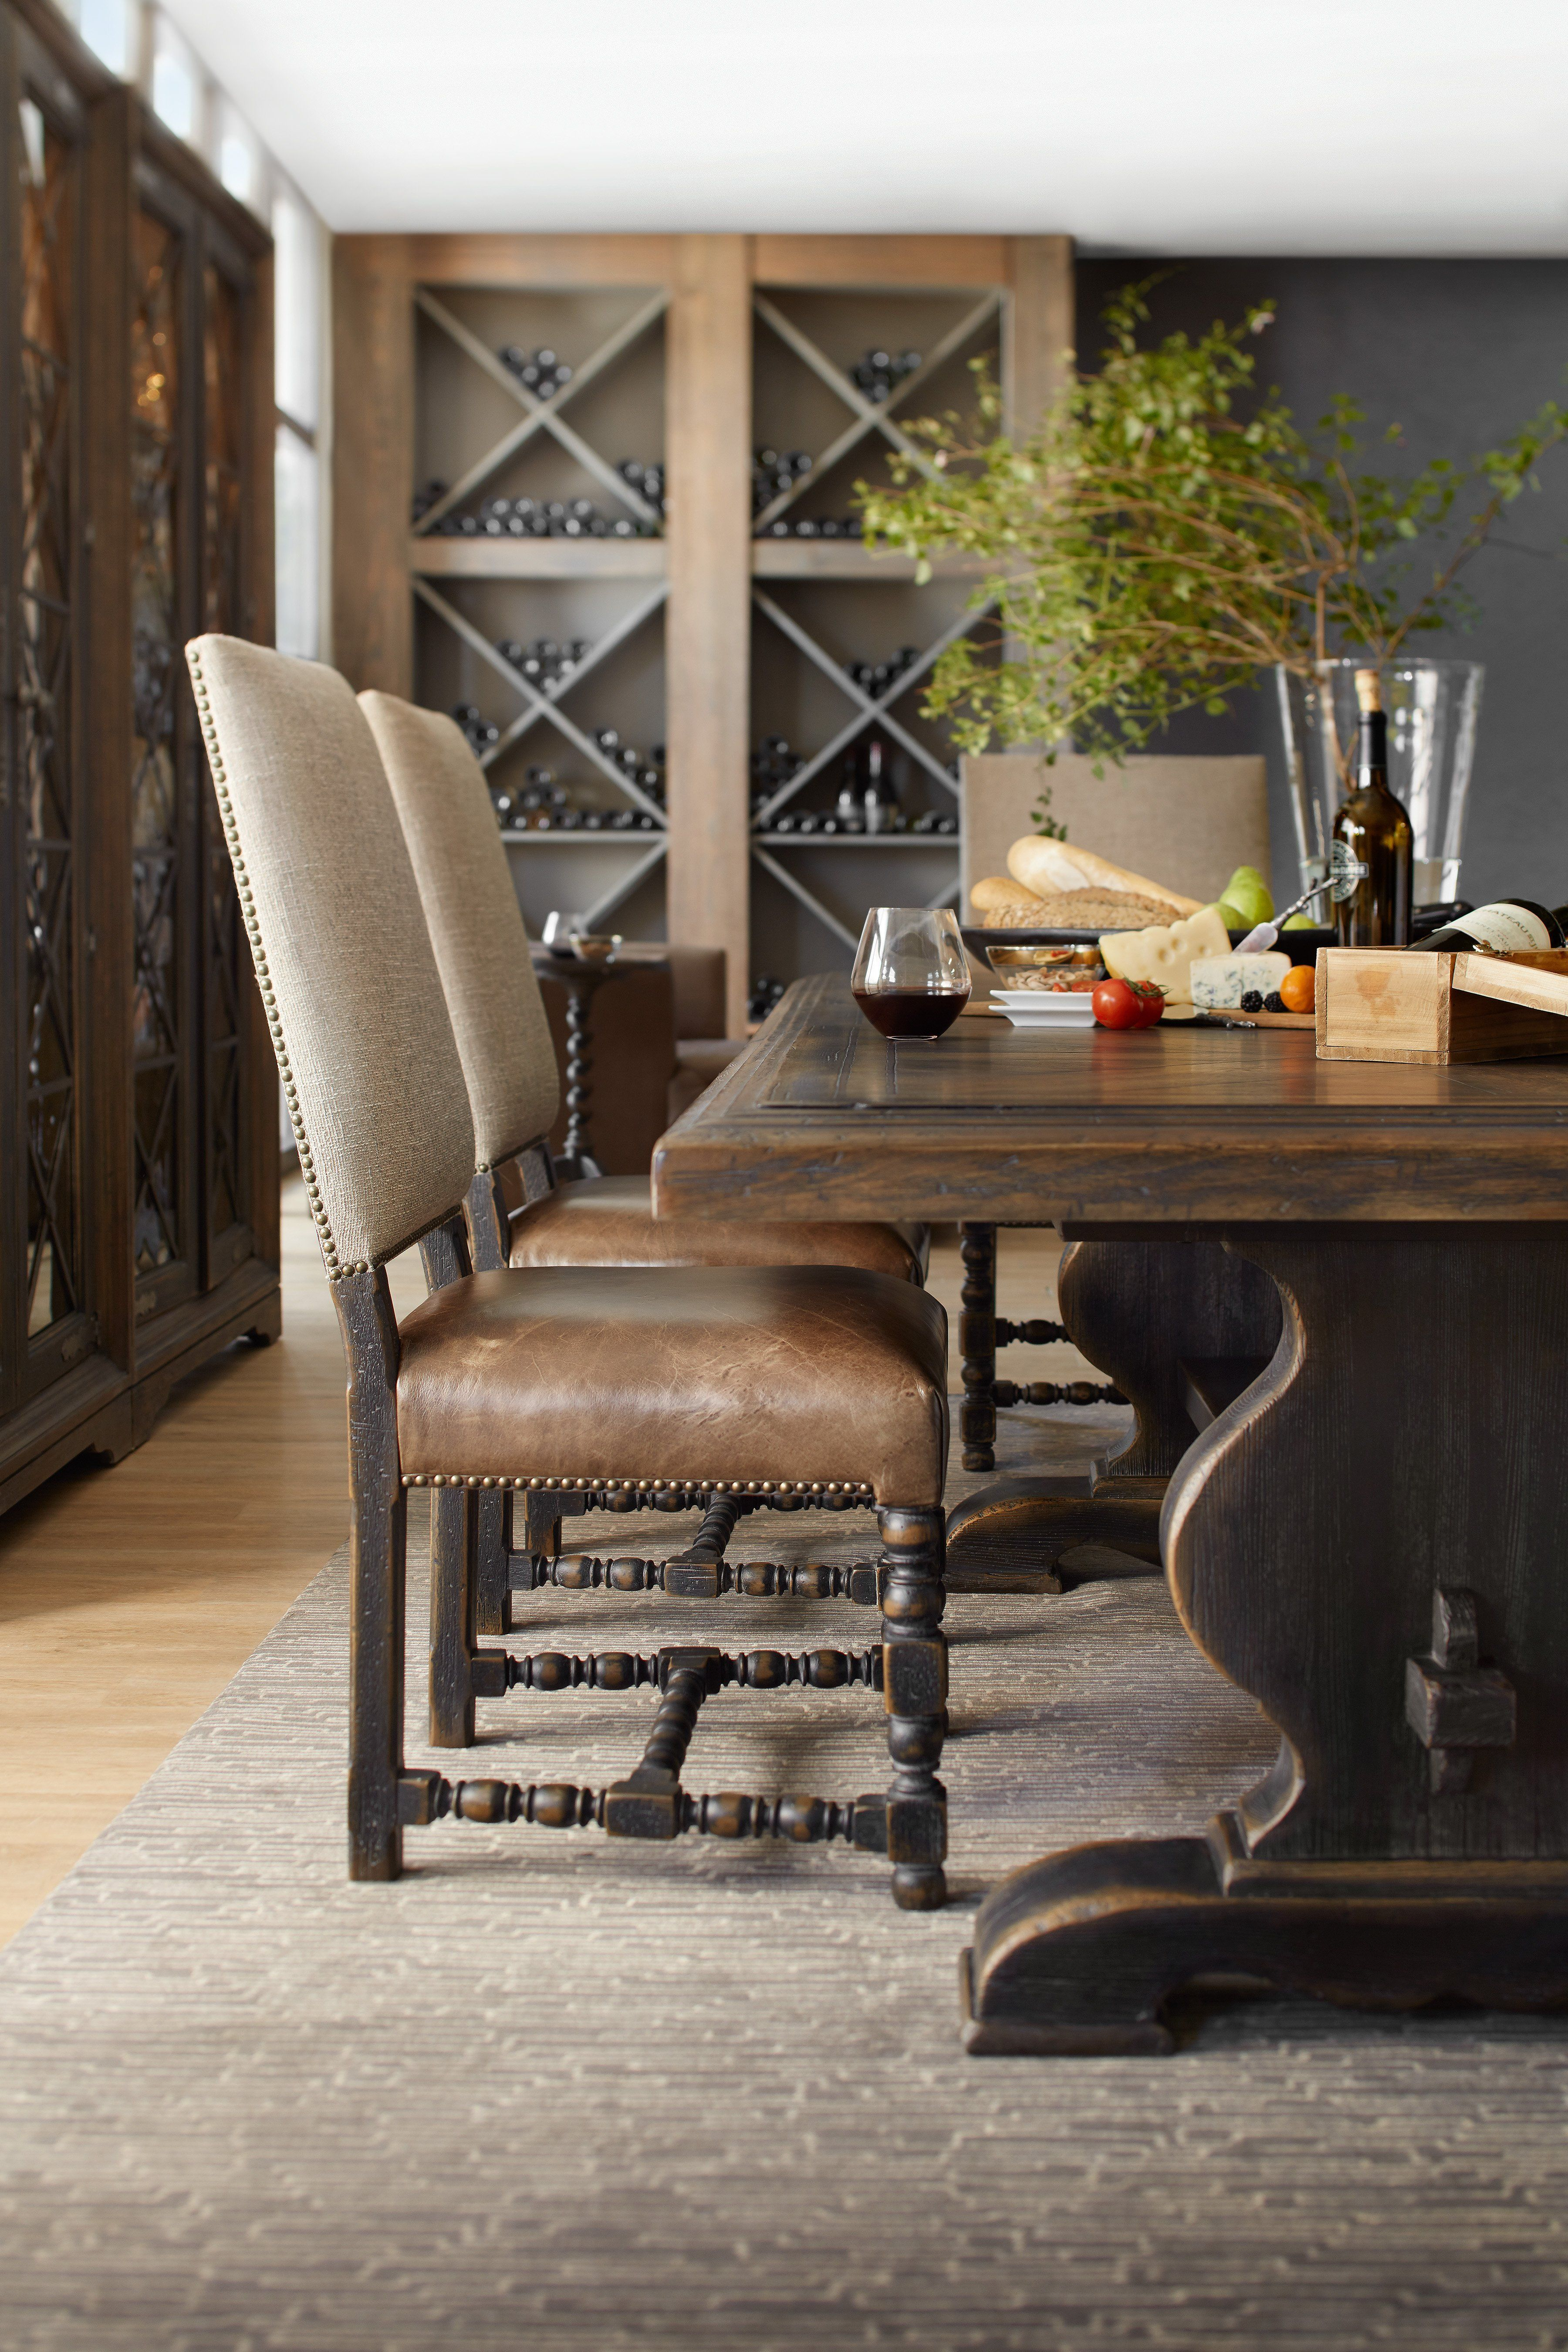 Comfort Upholstered Arm Chair Dark Wood Dining Table Side